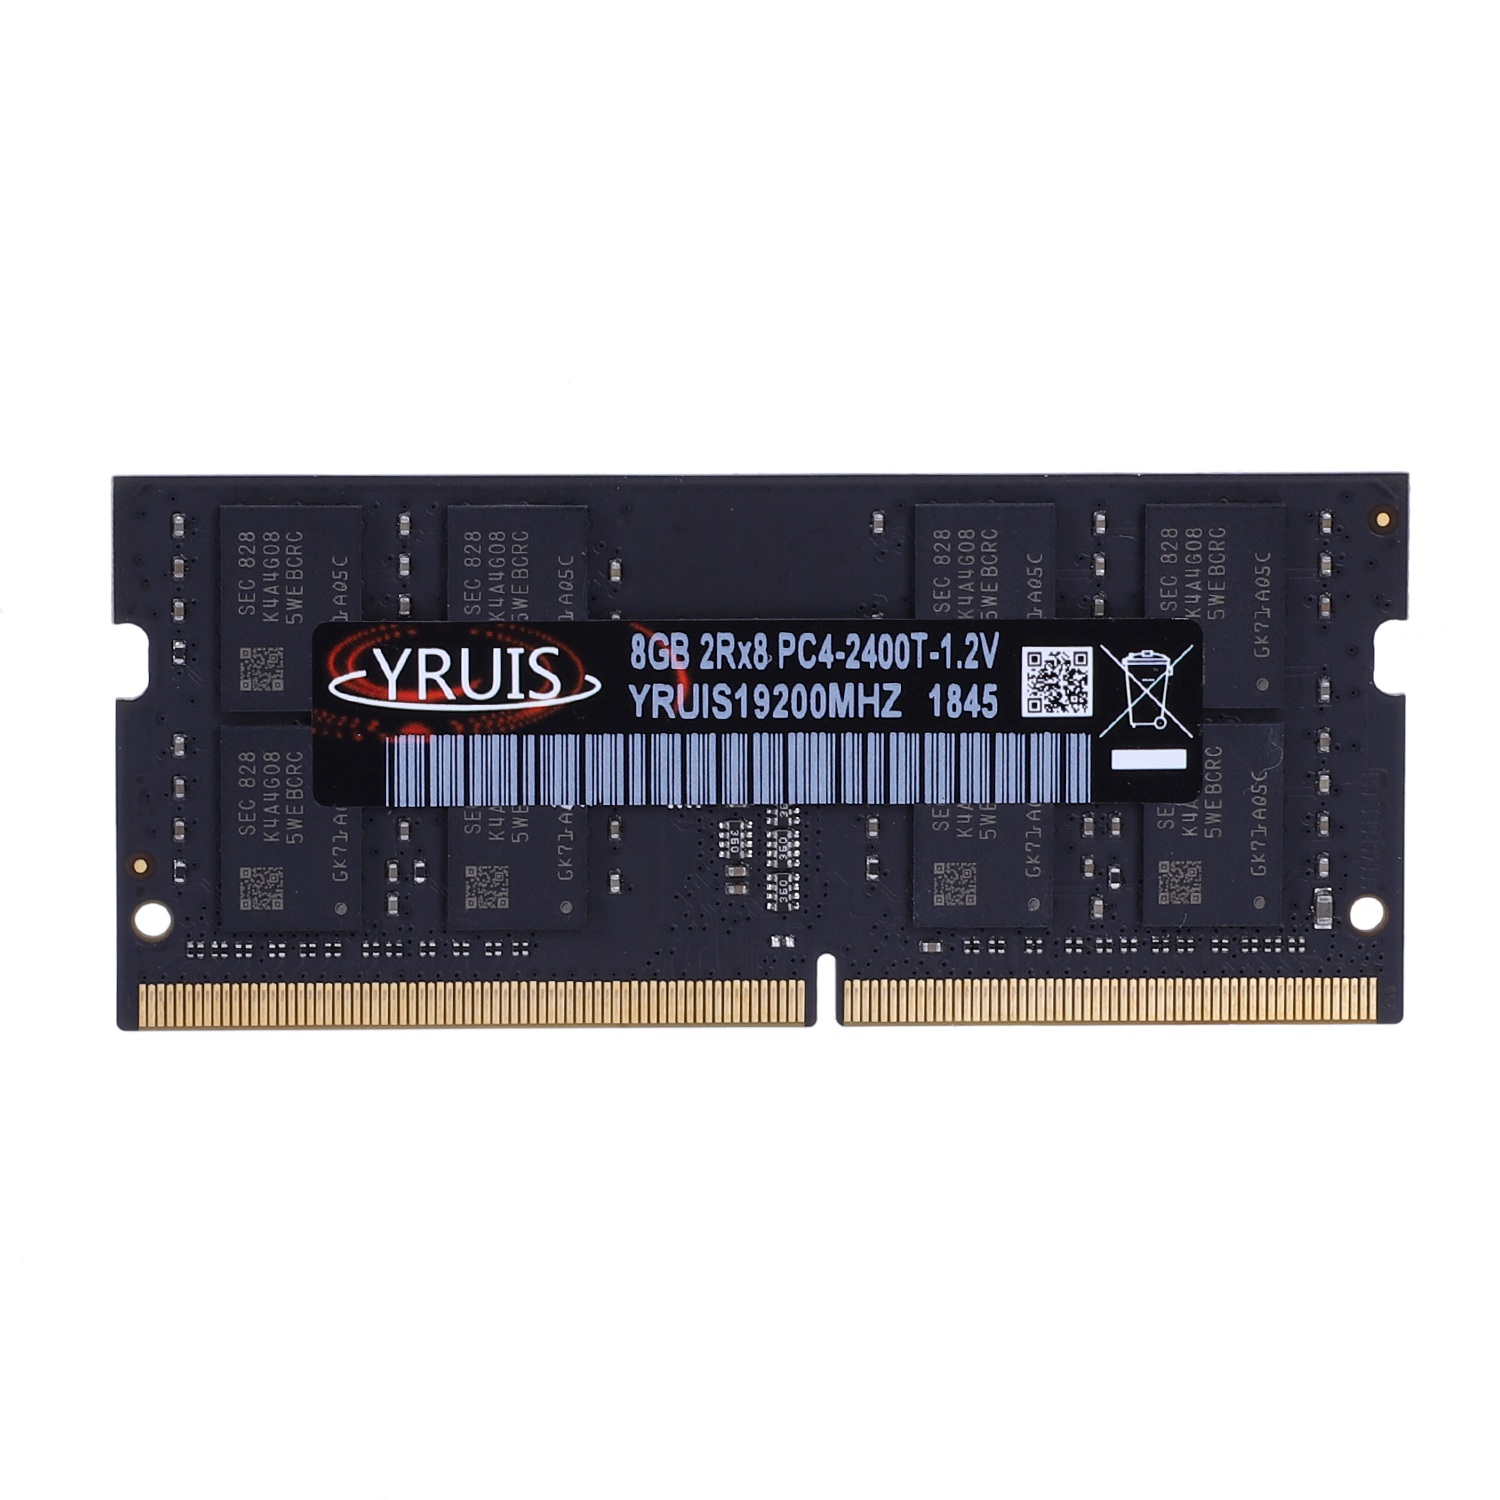 Yruis <font><b>Ddr4</b></font> 4G <font><b>8Gb</b></font> 2400Mhz Ram Sodimm Laptop Memory Support <font><b>Memoria</b></font> <font><b>Ddr4</b></font> <font><b>Notebook</b></font>(1.2V) image